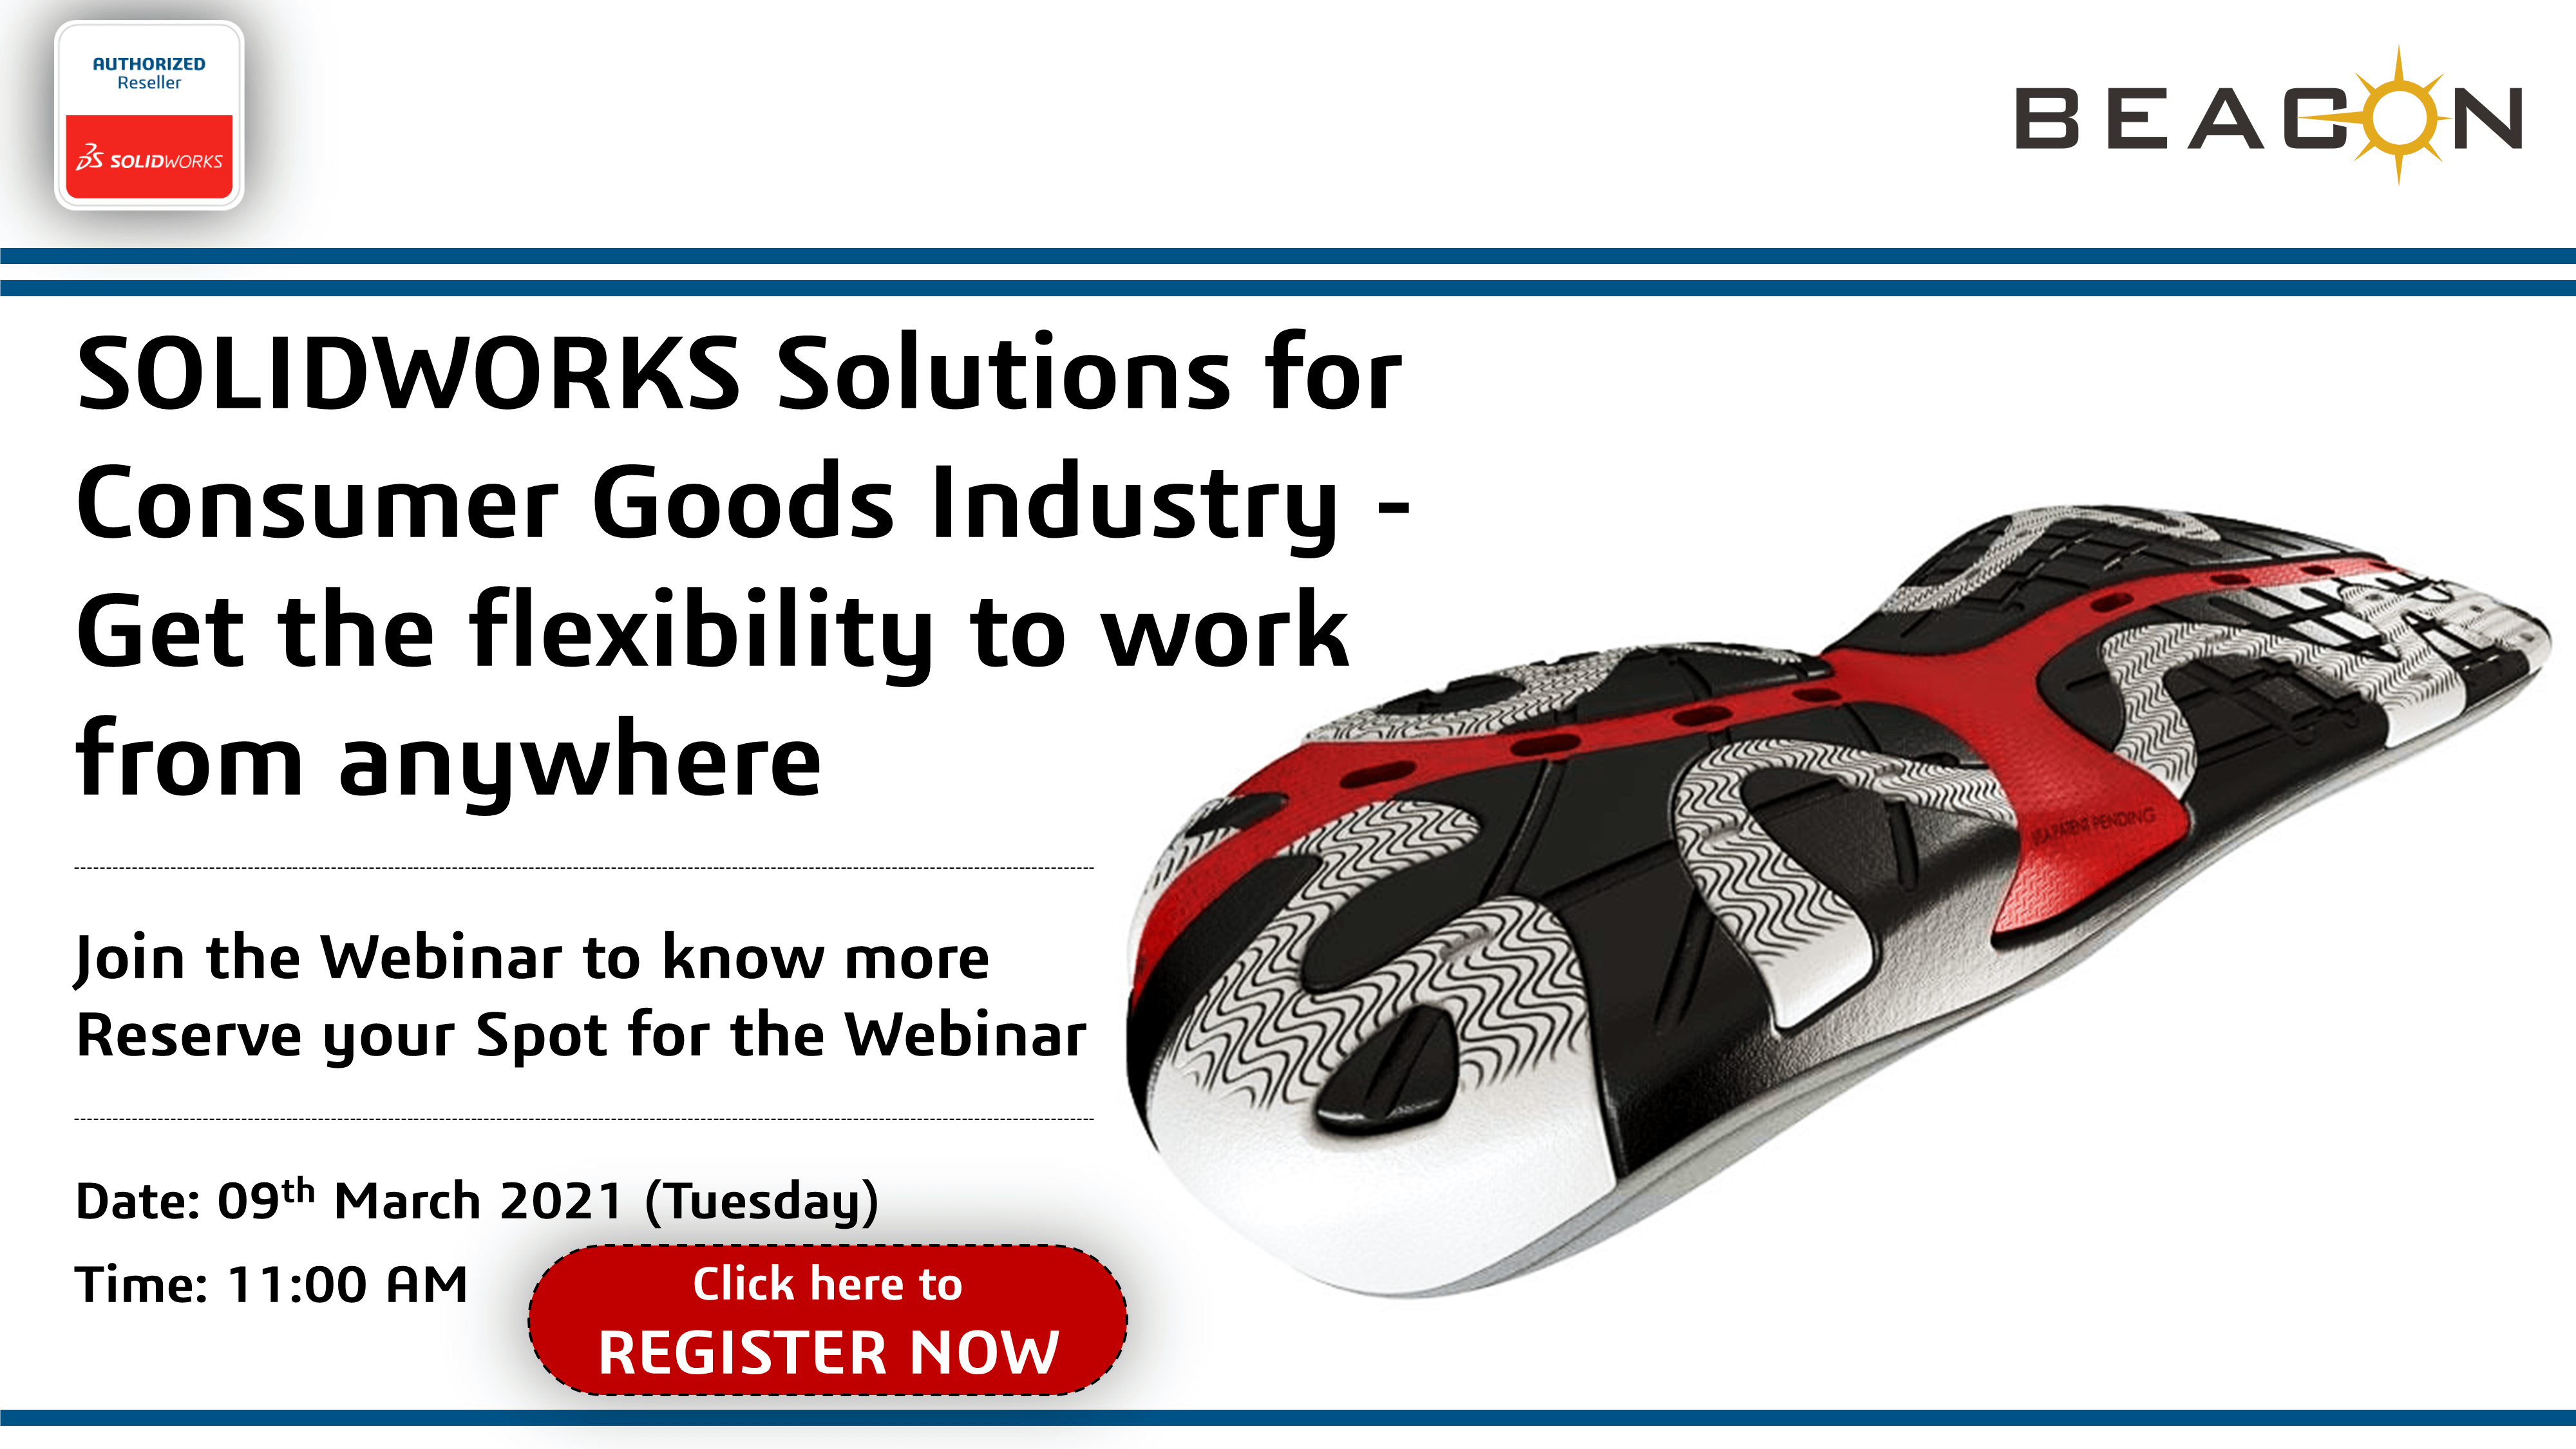 SOLIDWORKS Solutions for Consumer Goods Industry - Get the flexibility to work from anywhere